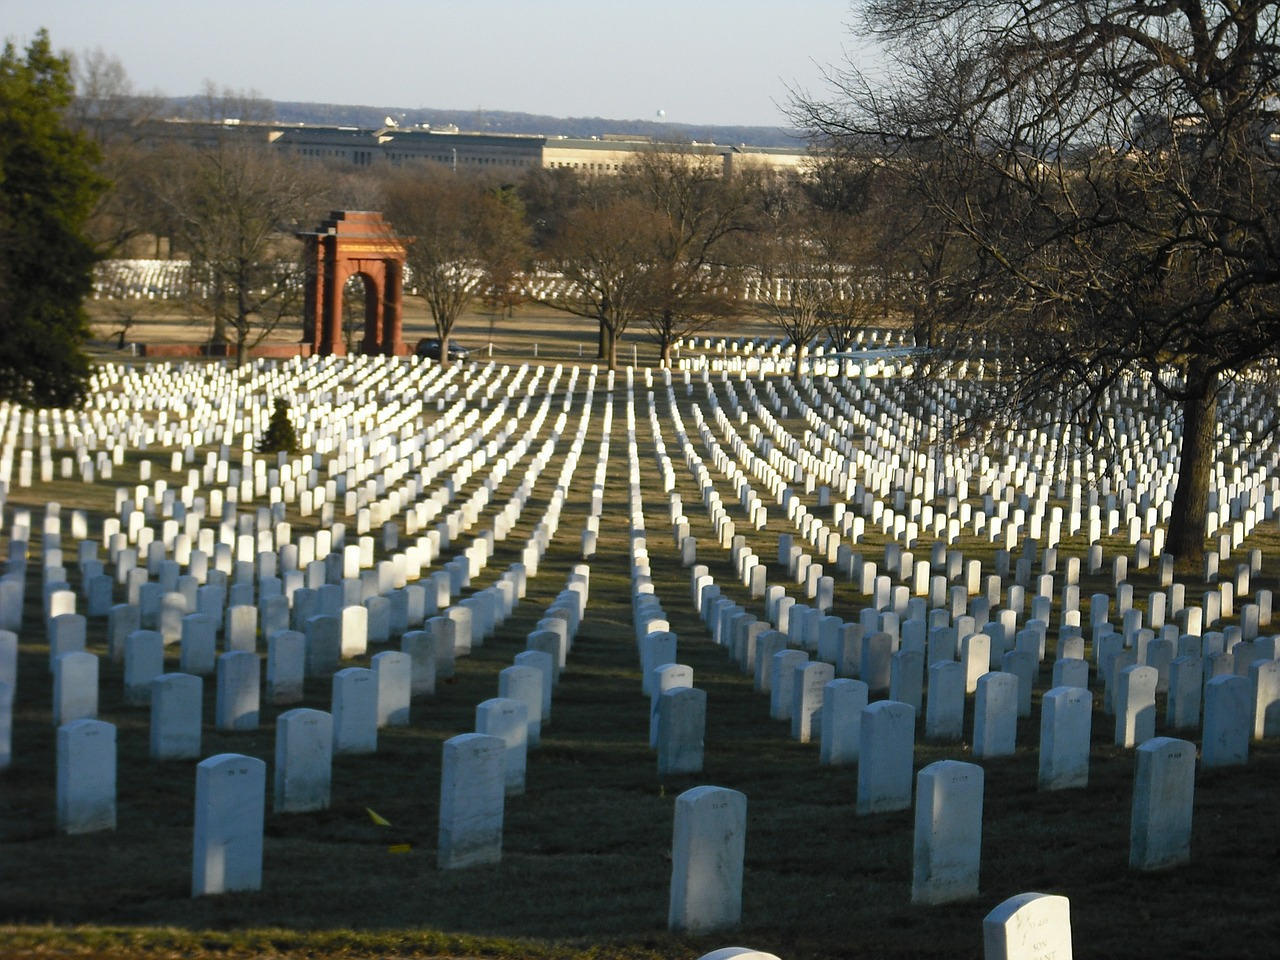 arlington-national-cemetery-350566_1280 (1)